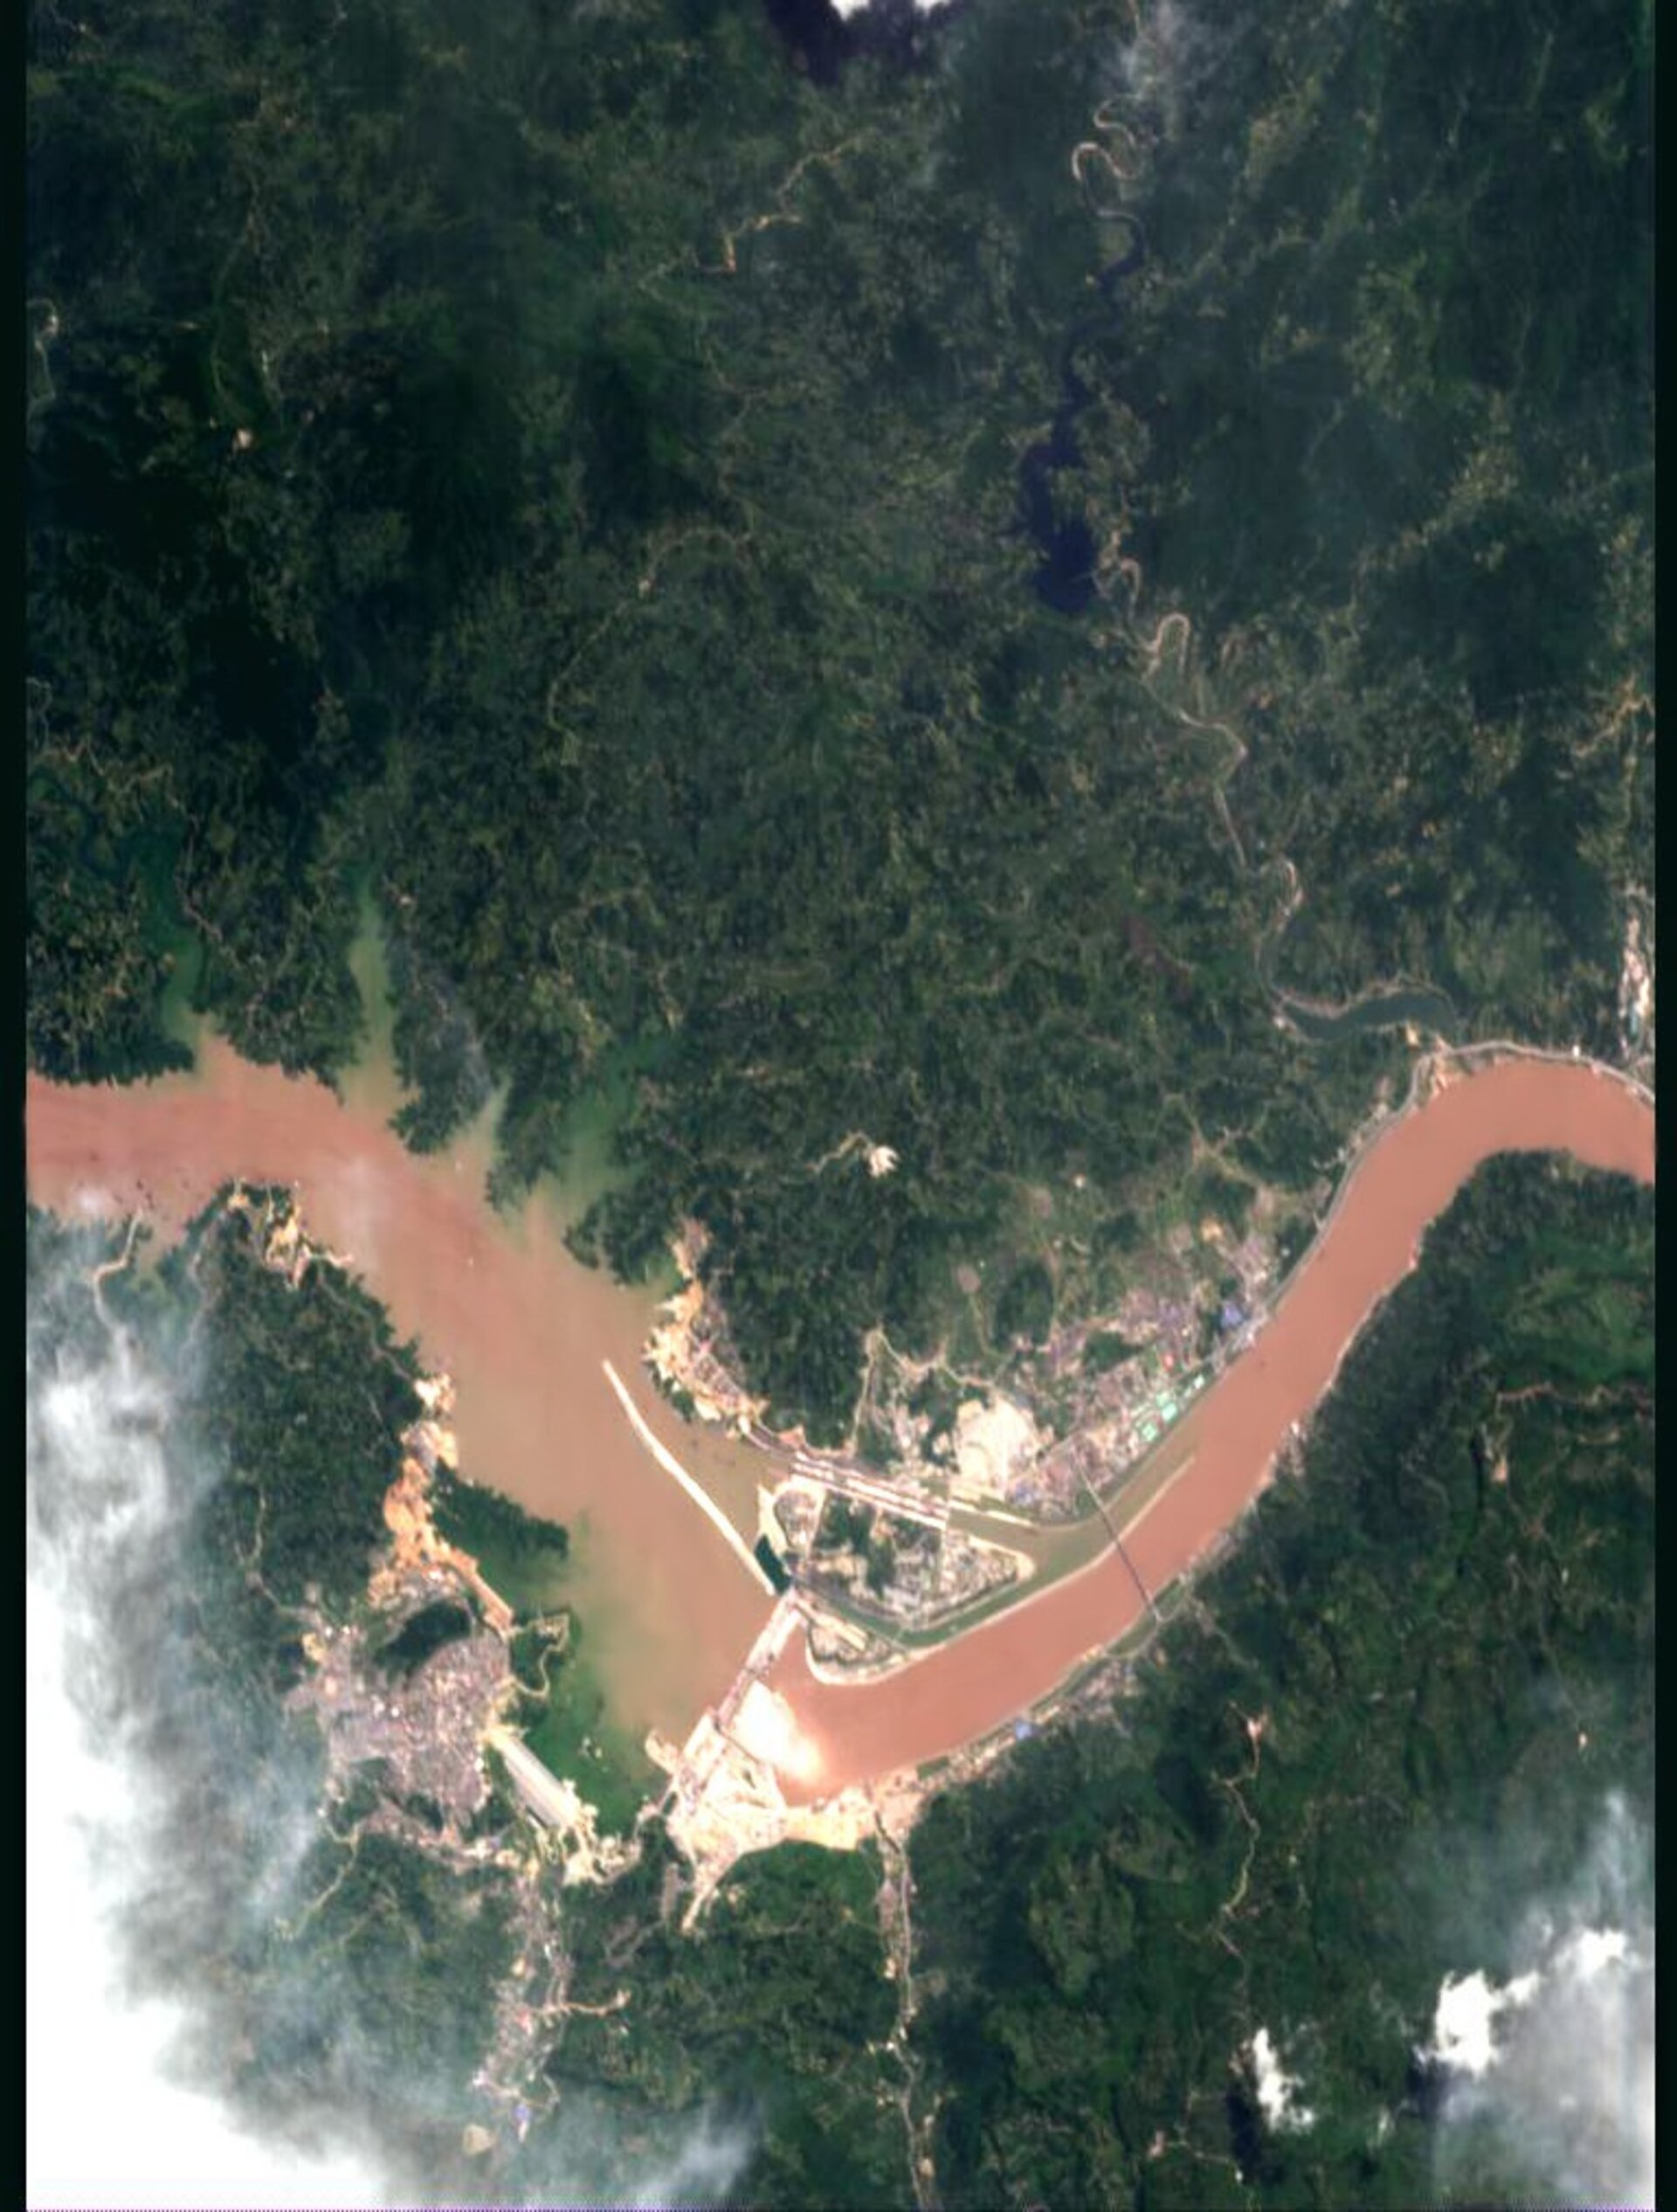 China's Three Gorges dam - CHRIS image, 30 July 2003